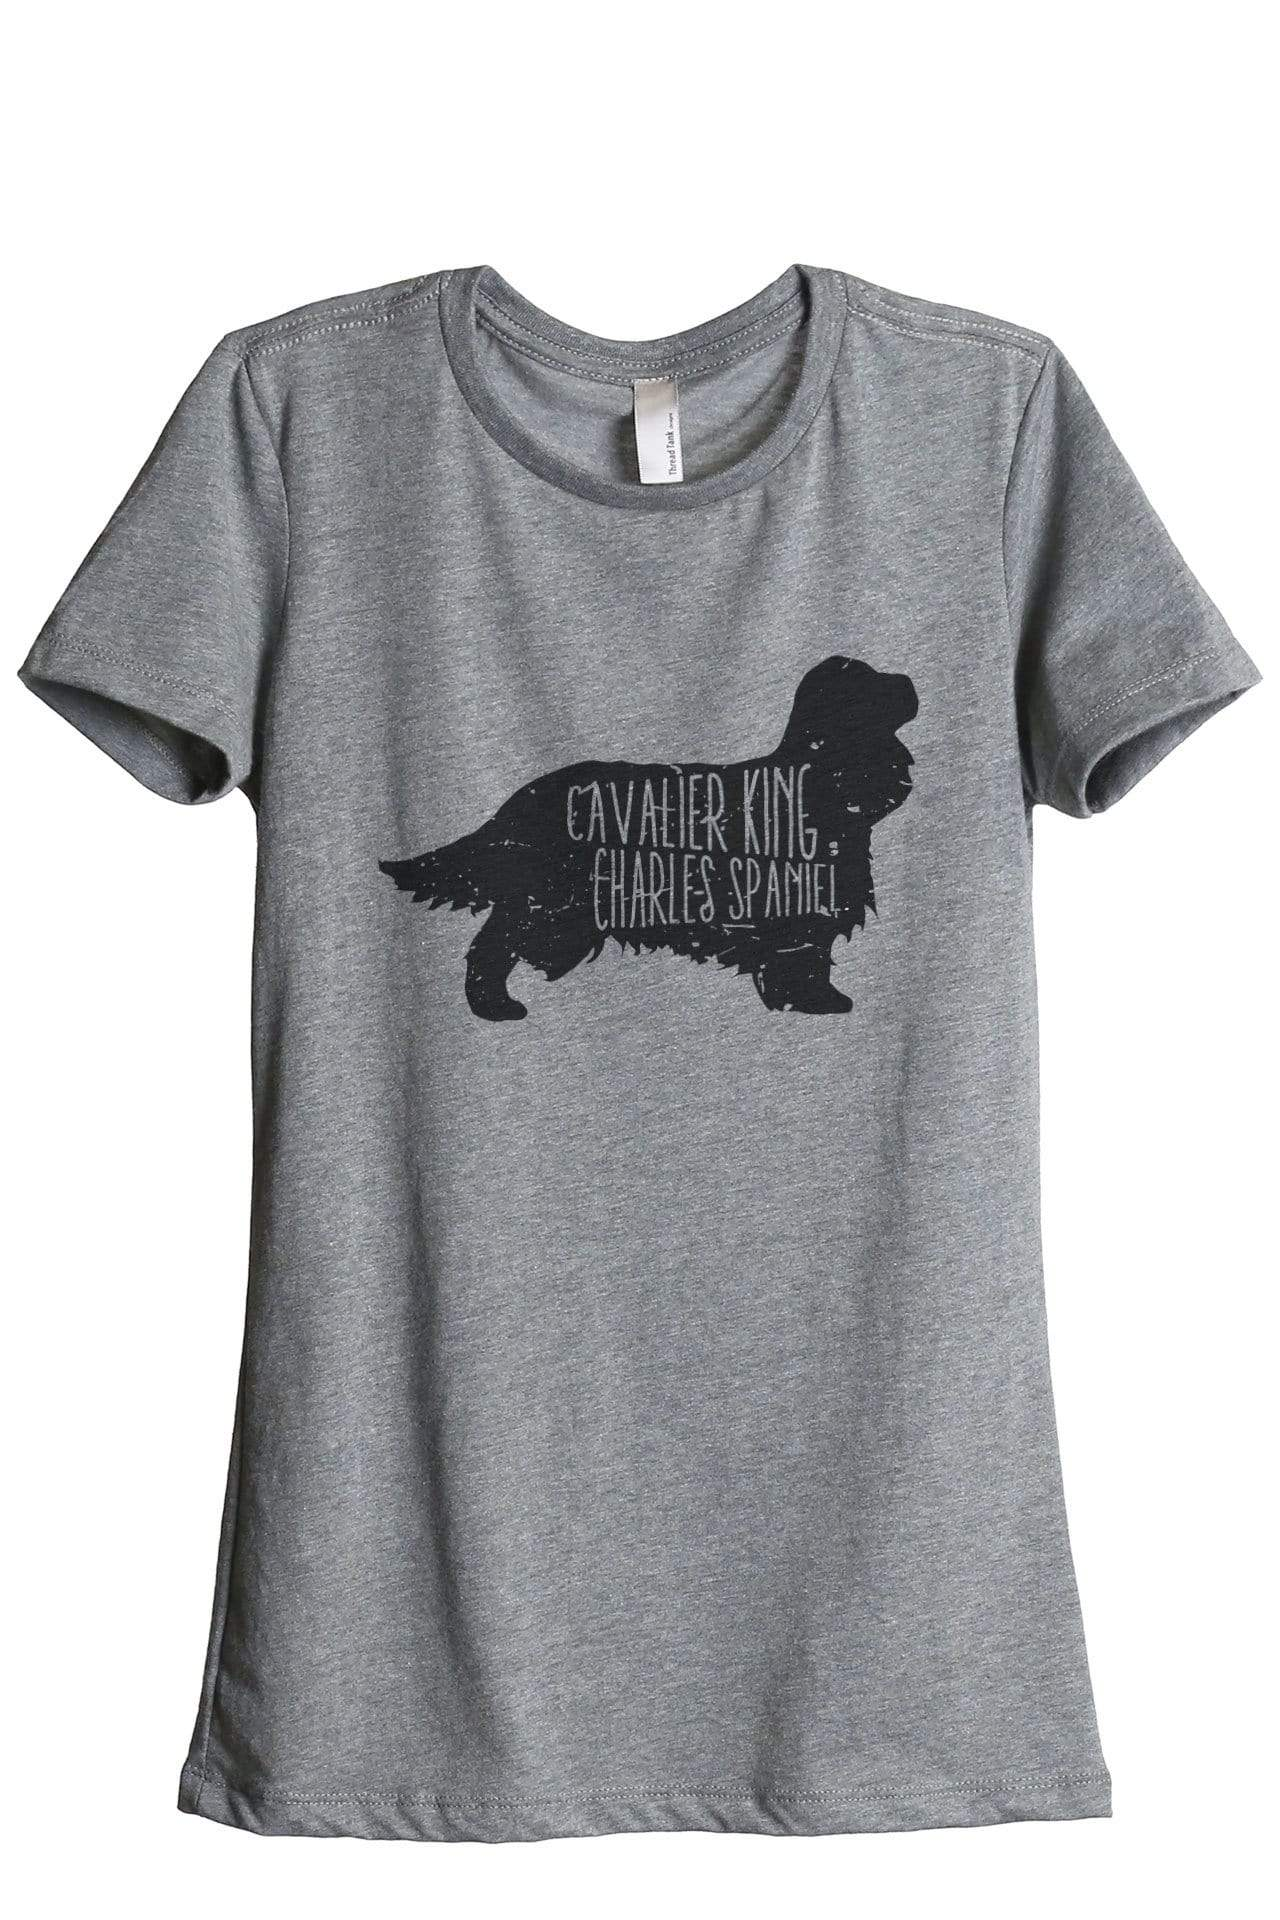 Cavalier King Charles Spaniel Dog Silhouette Graphic Women's Heather Grey Relaxed Crew T-Shirt Tee Top